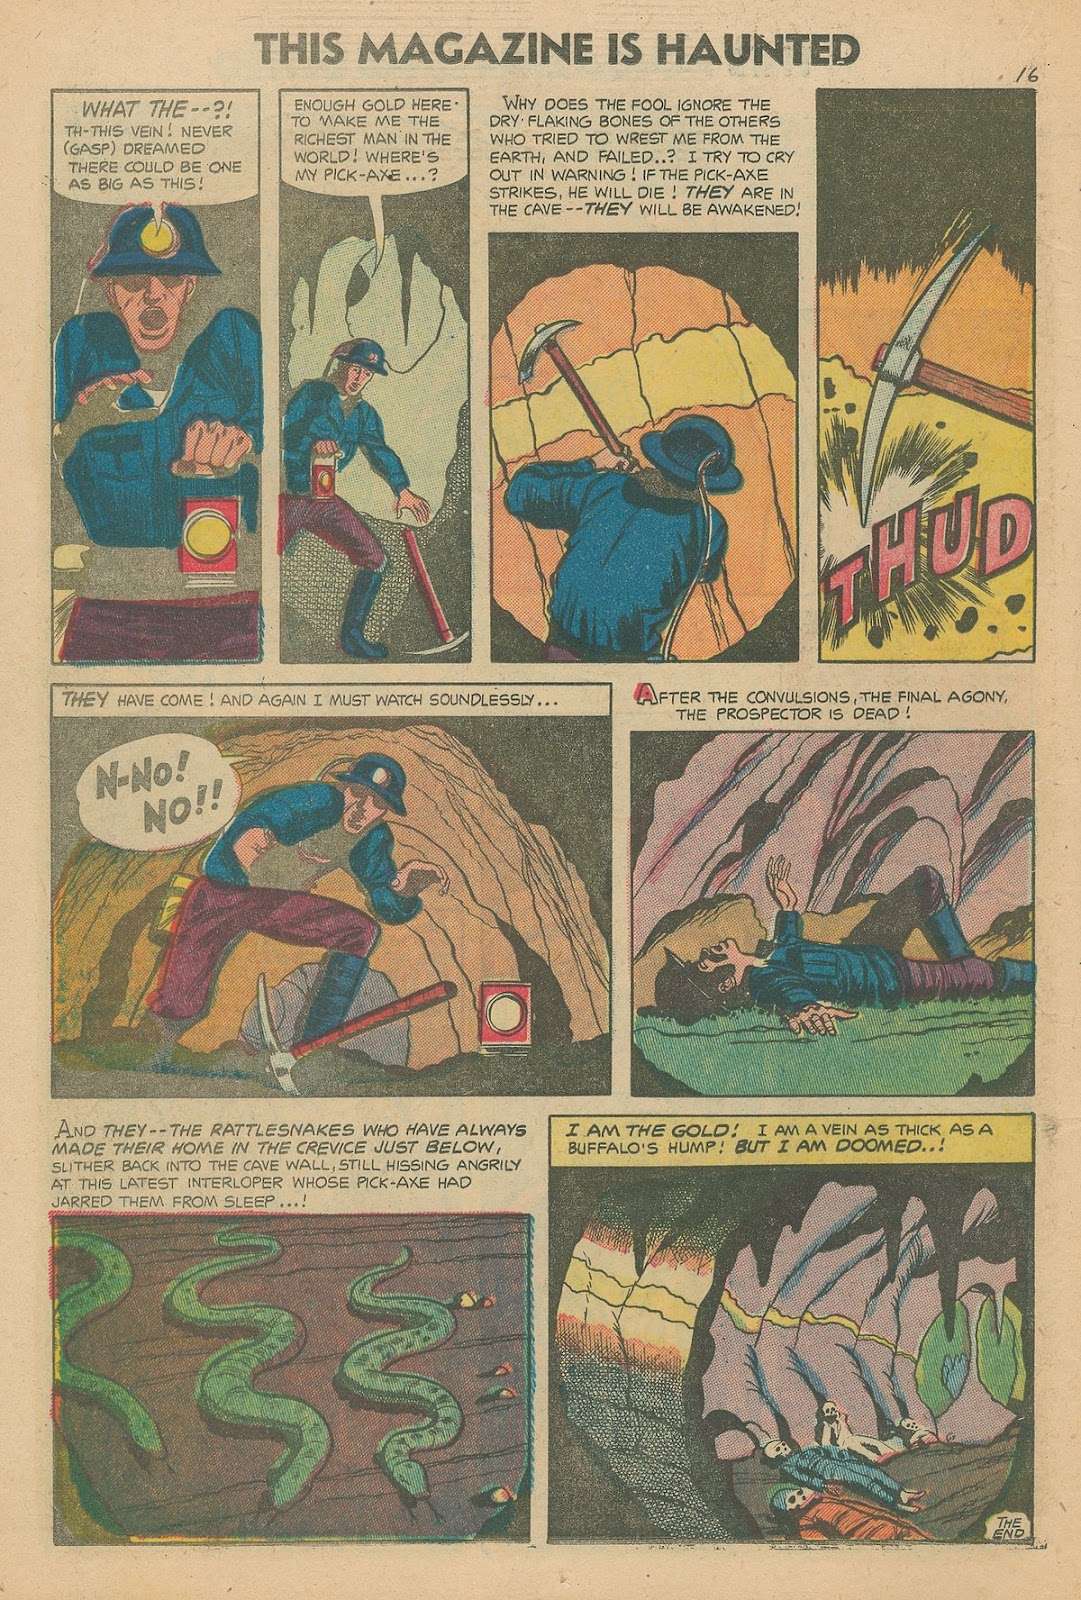 Read online This Magazine Is Haunted comic -  Issue #21 - 18